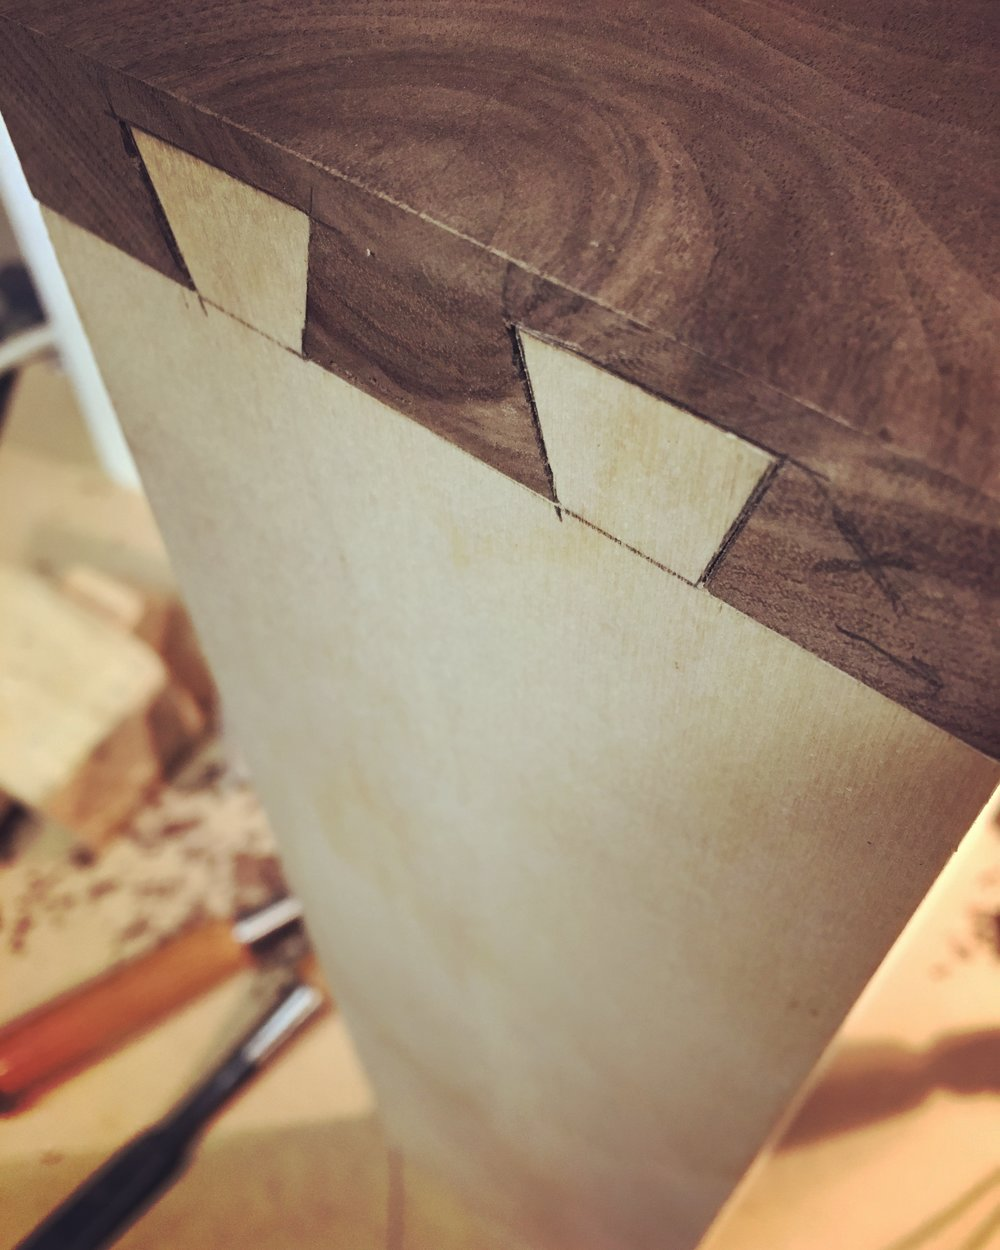 Work in progress - fitting the hidden dovetails